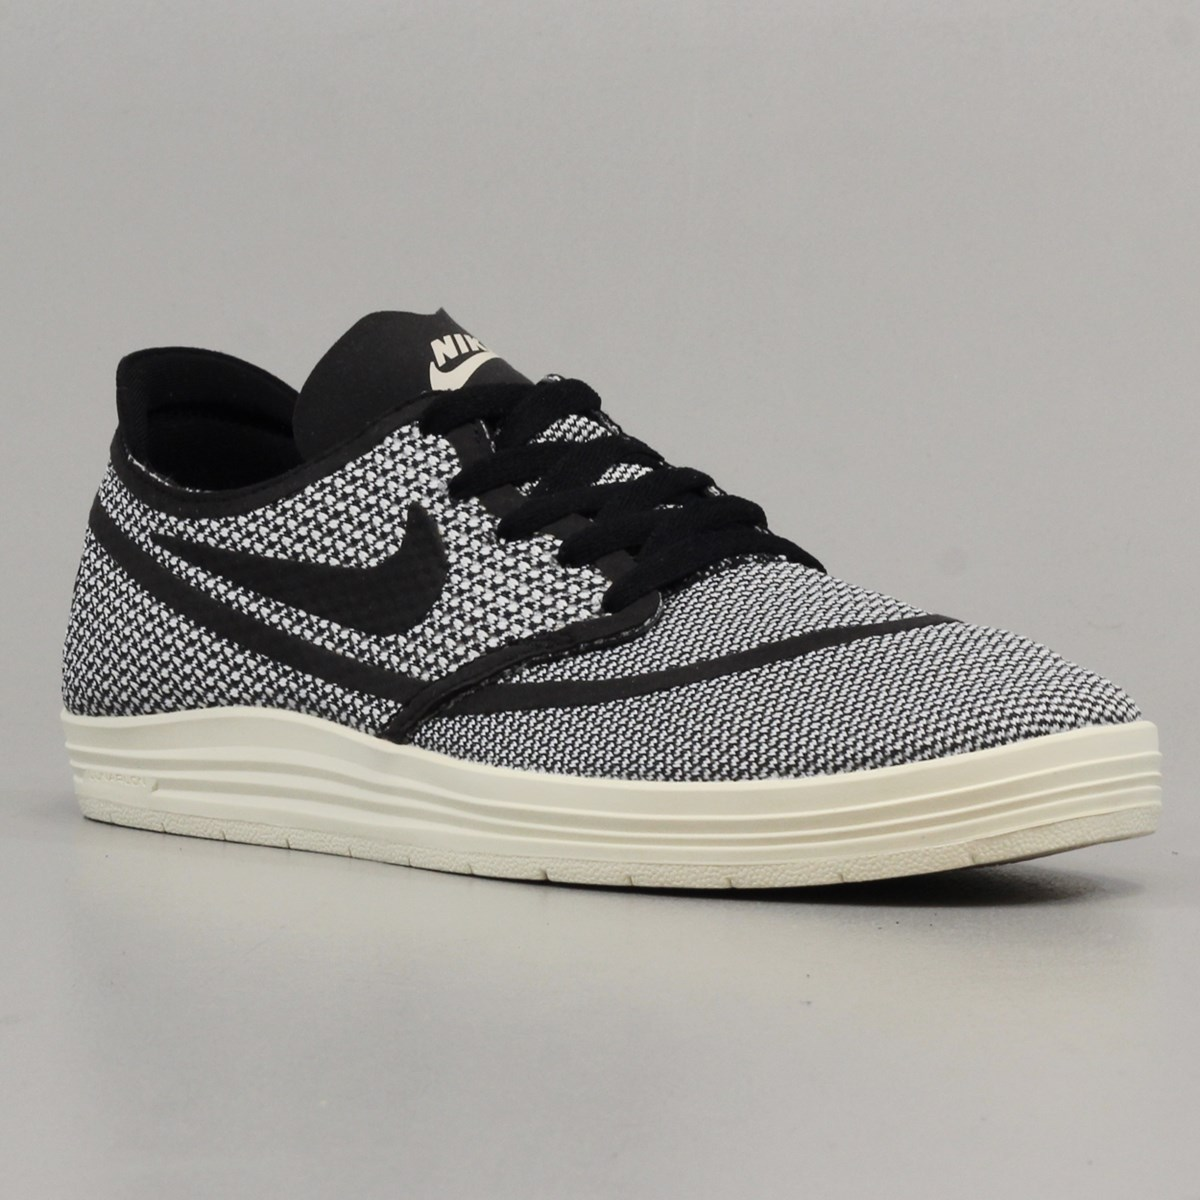 nike sb baskets lunar oneshot rr black 41 nike 10k short de course. Black Bedroom Furniture Sets. Home Design Ideas